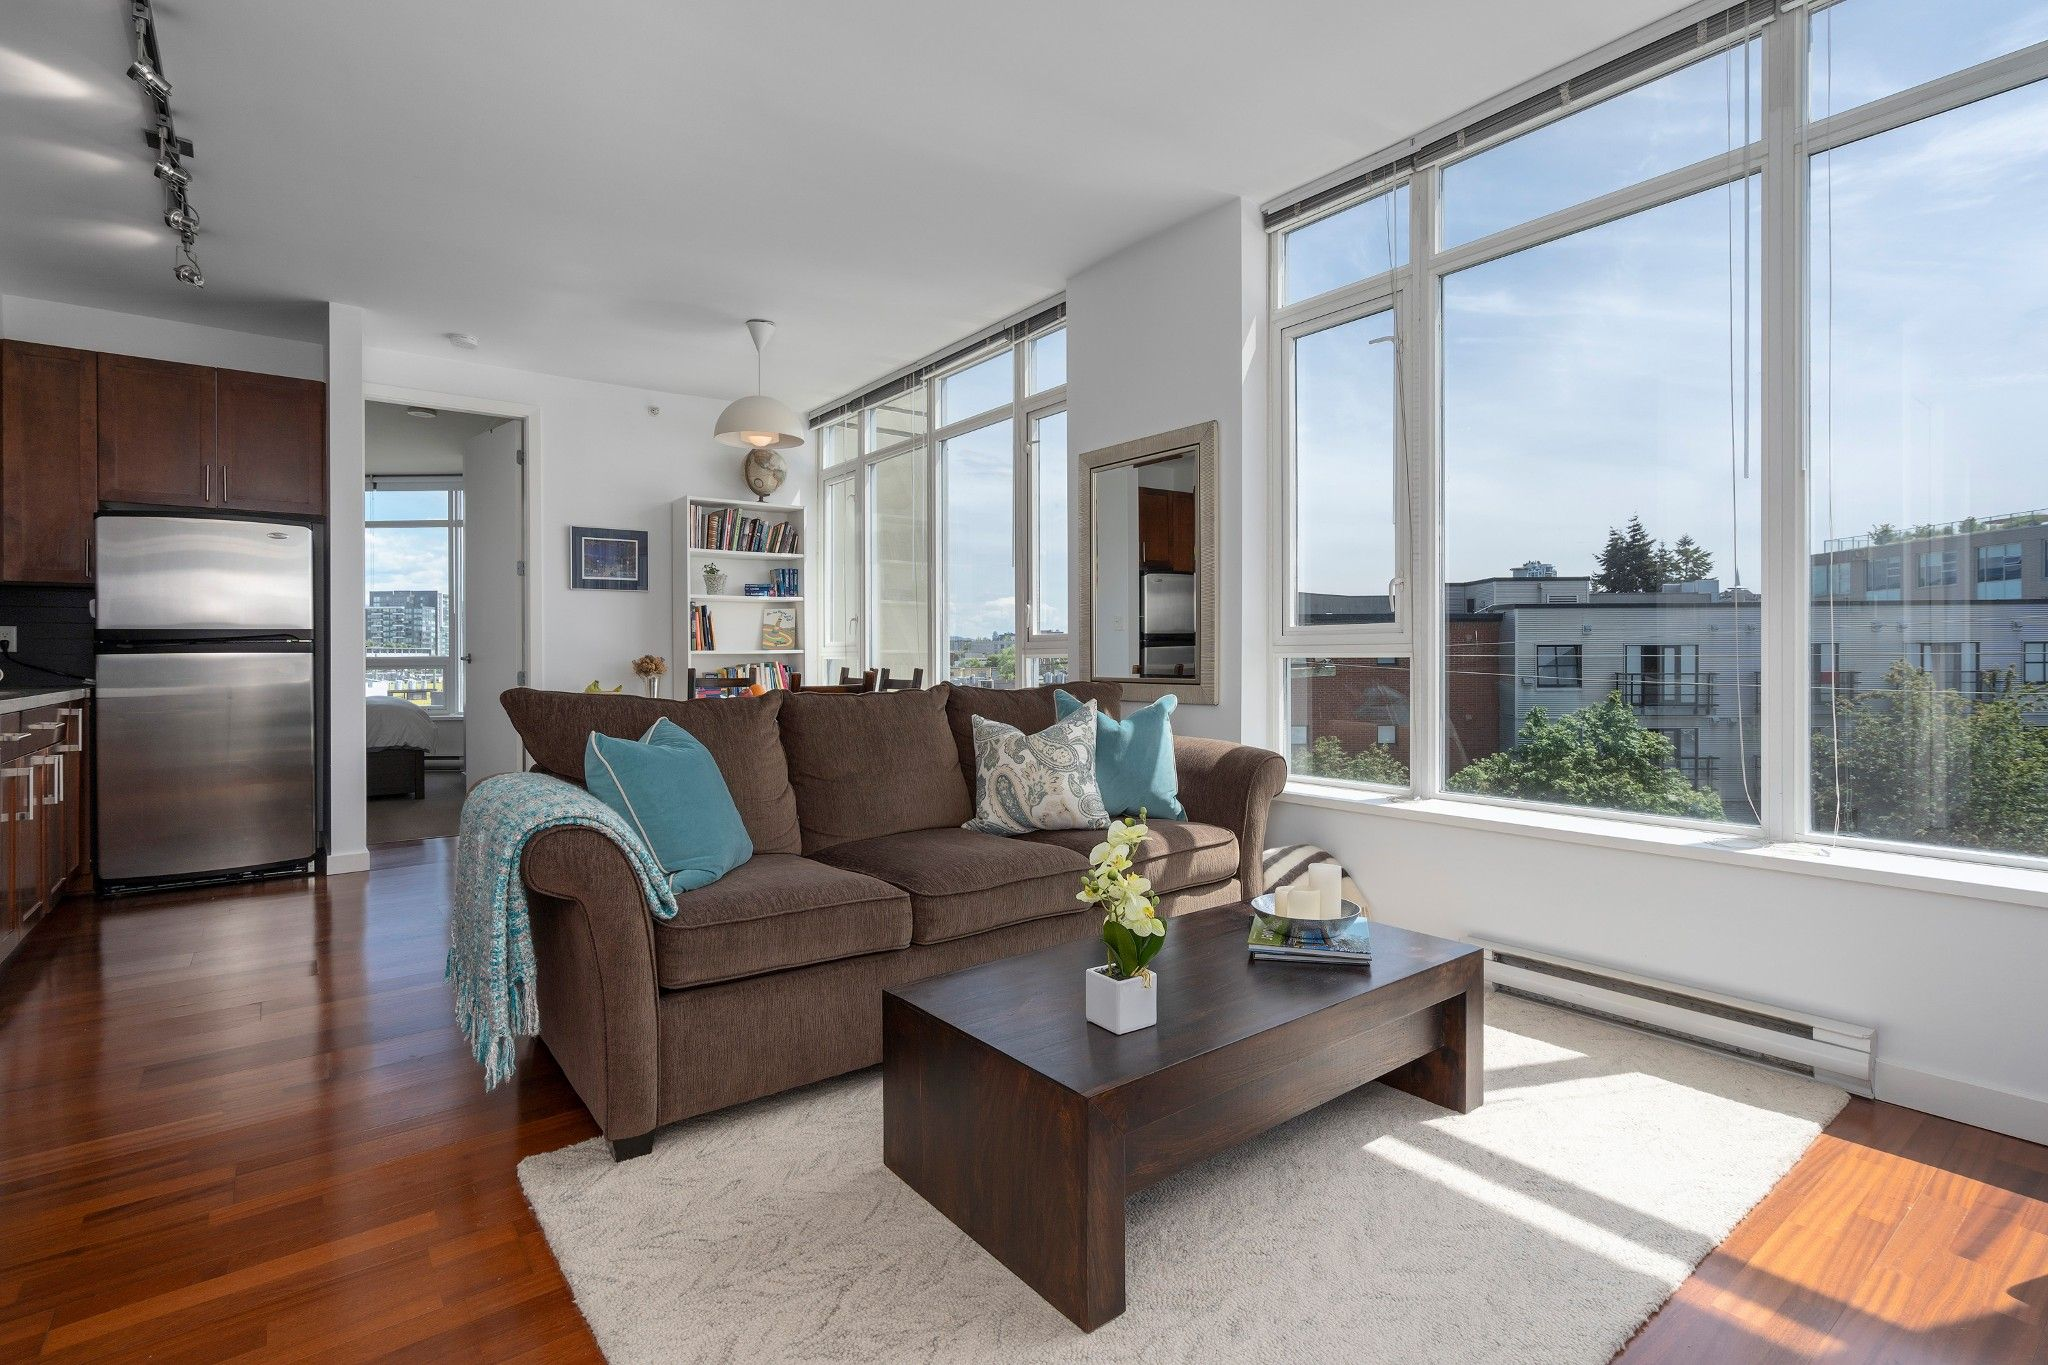 """Main Photo: 413 2055 YUKON Street in Vancouver: False Creek Condo for sale in """"THE MONTREUX"""" (Vancouver West)  : MLS®# R2371441"""